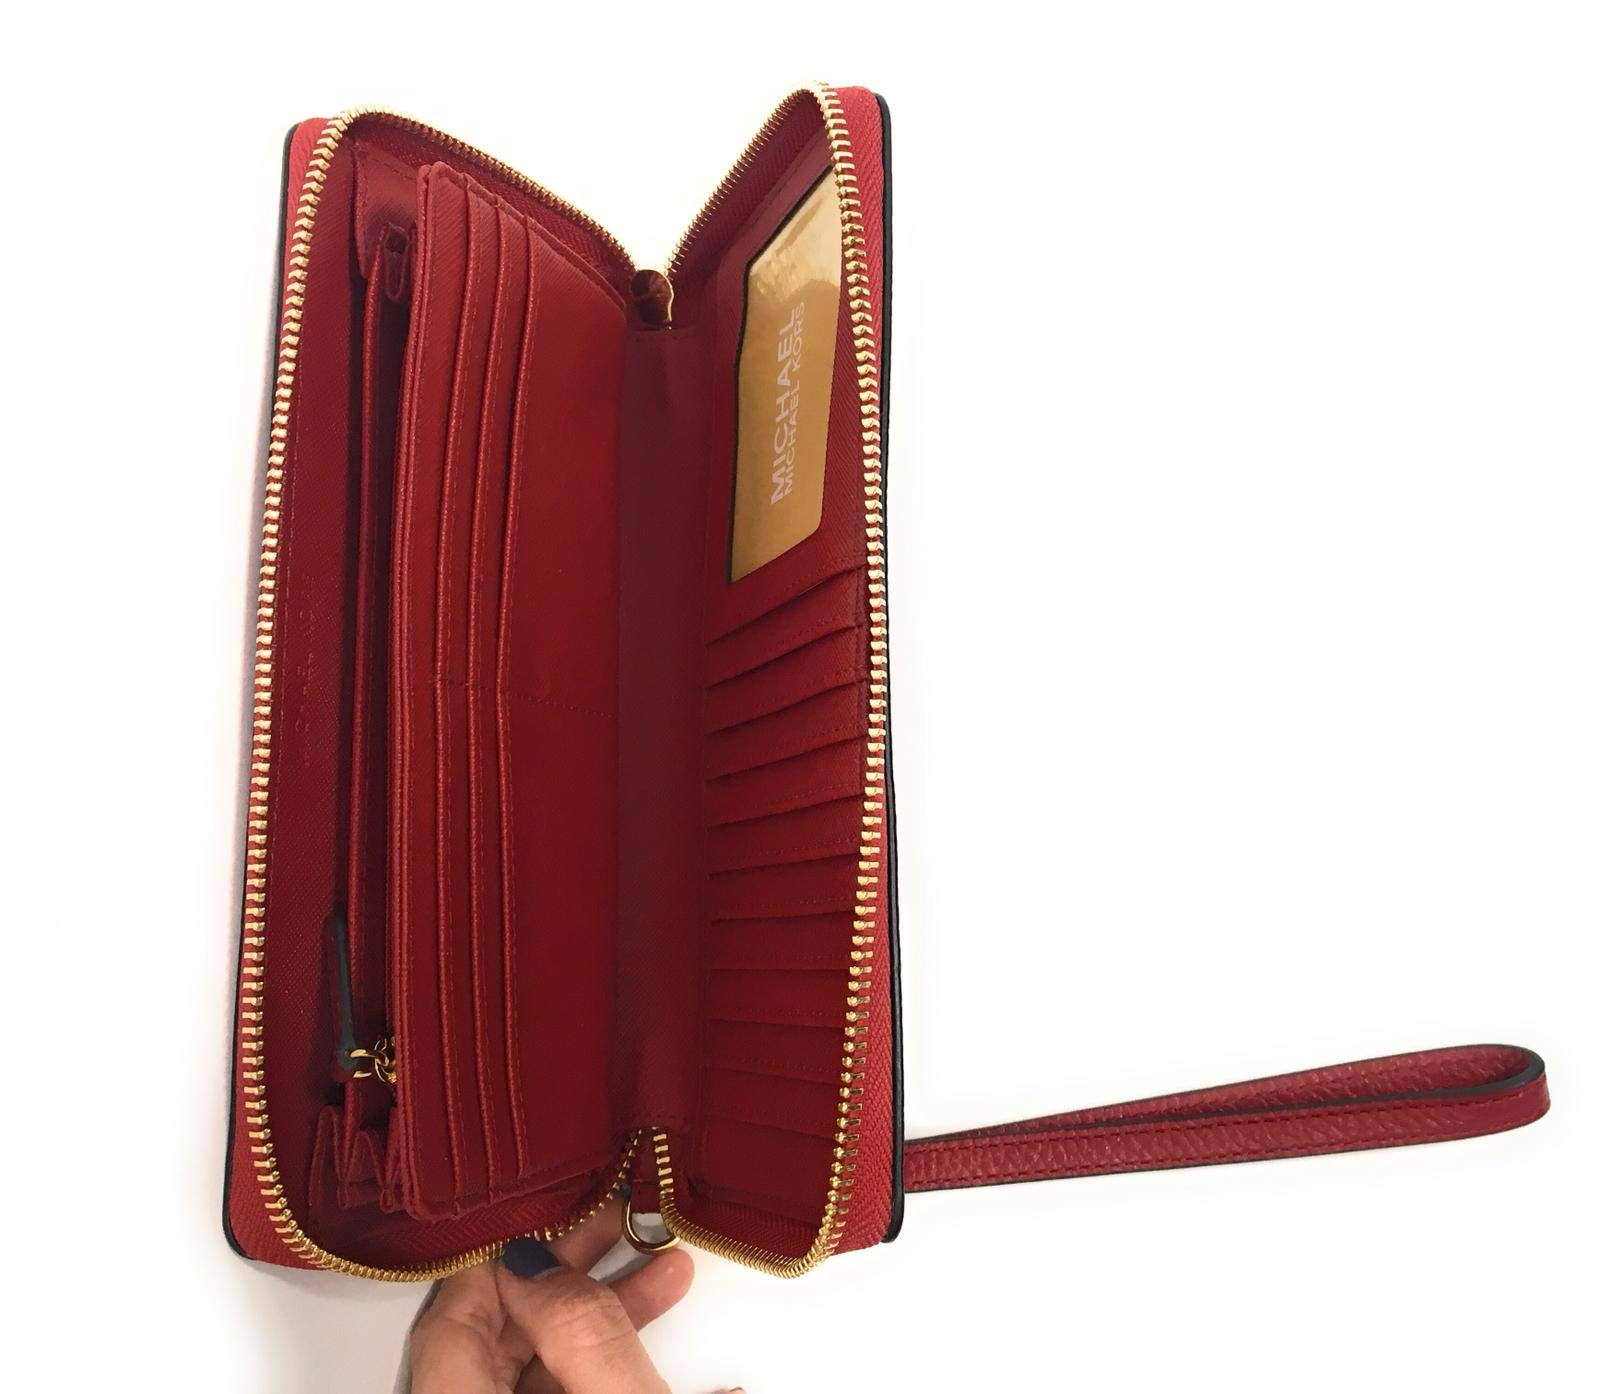 Michael Kors Jet Set Travel Continental Zip Around Leather Wallet Wristlet (Scarlet) by Michael Kors (Image #3)